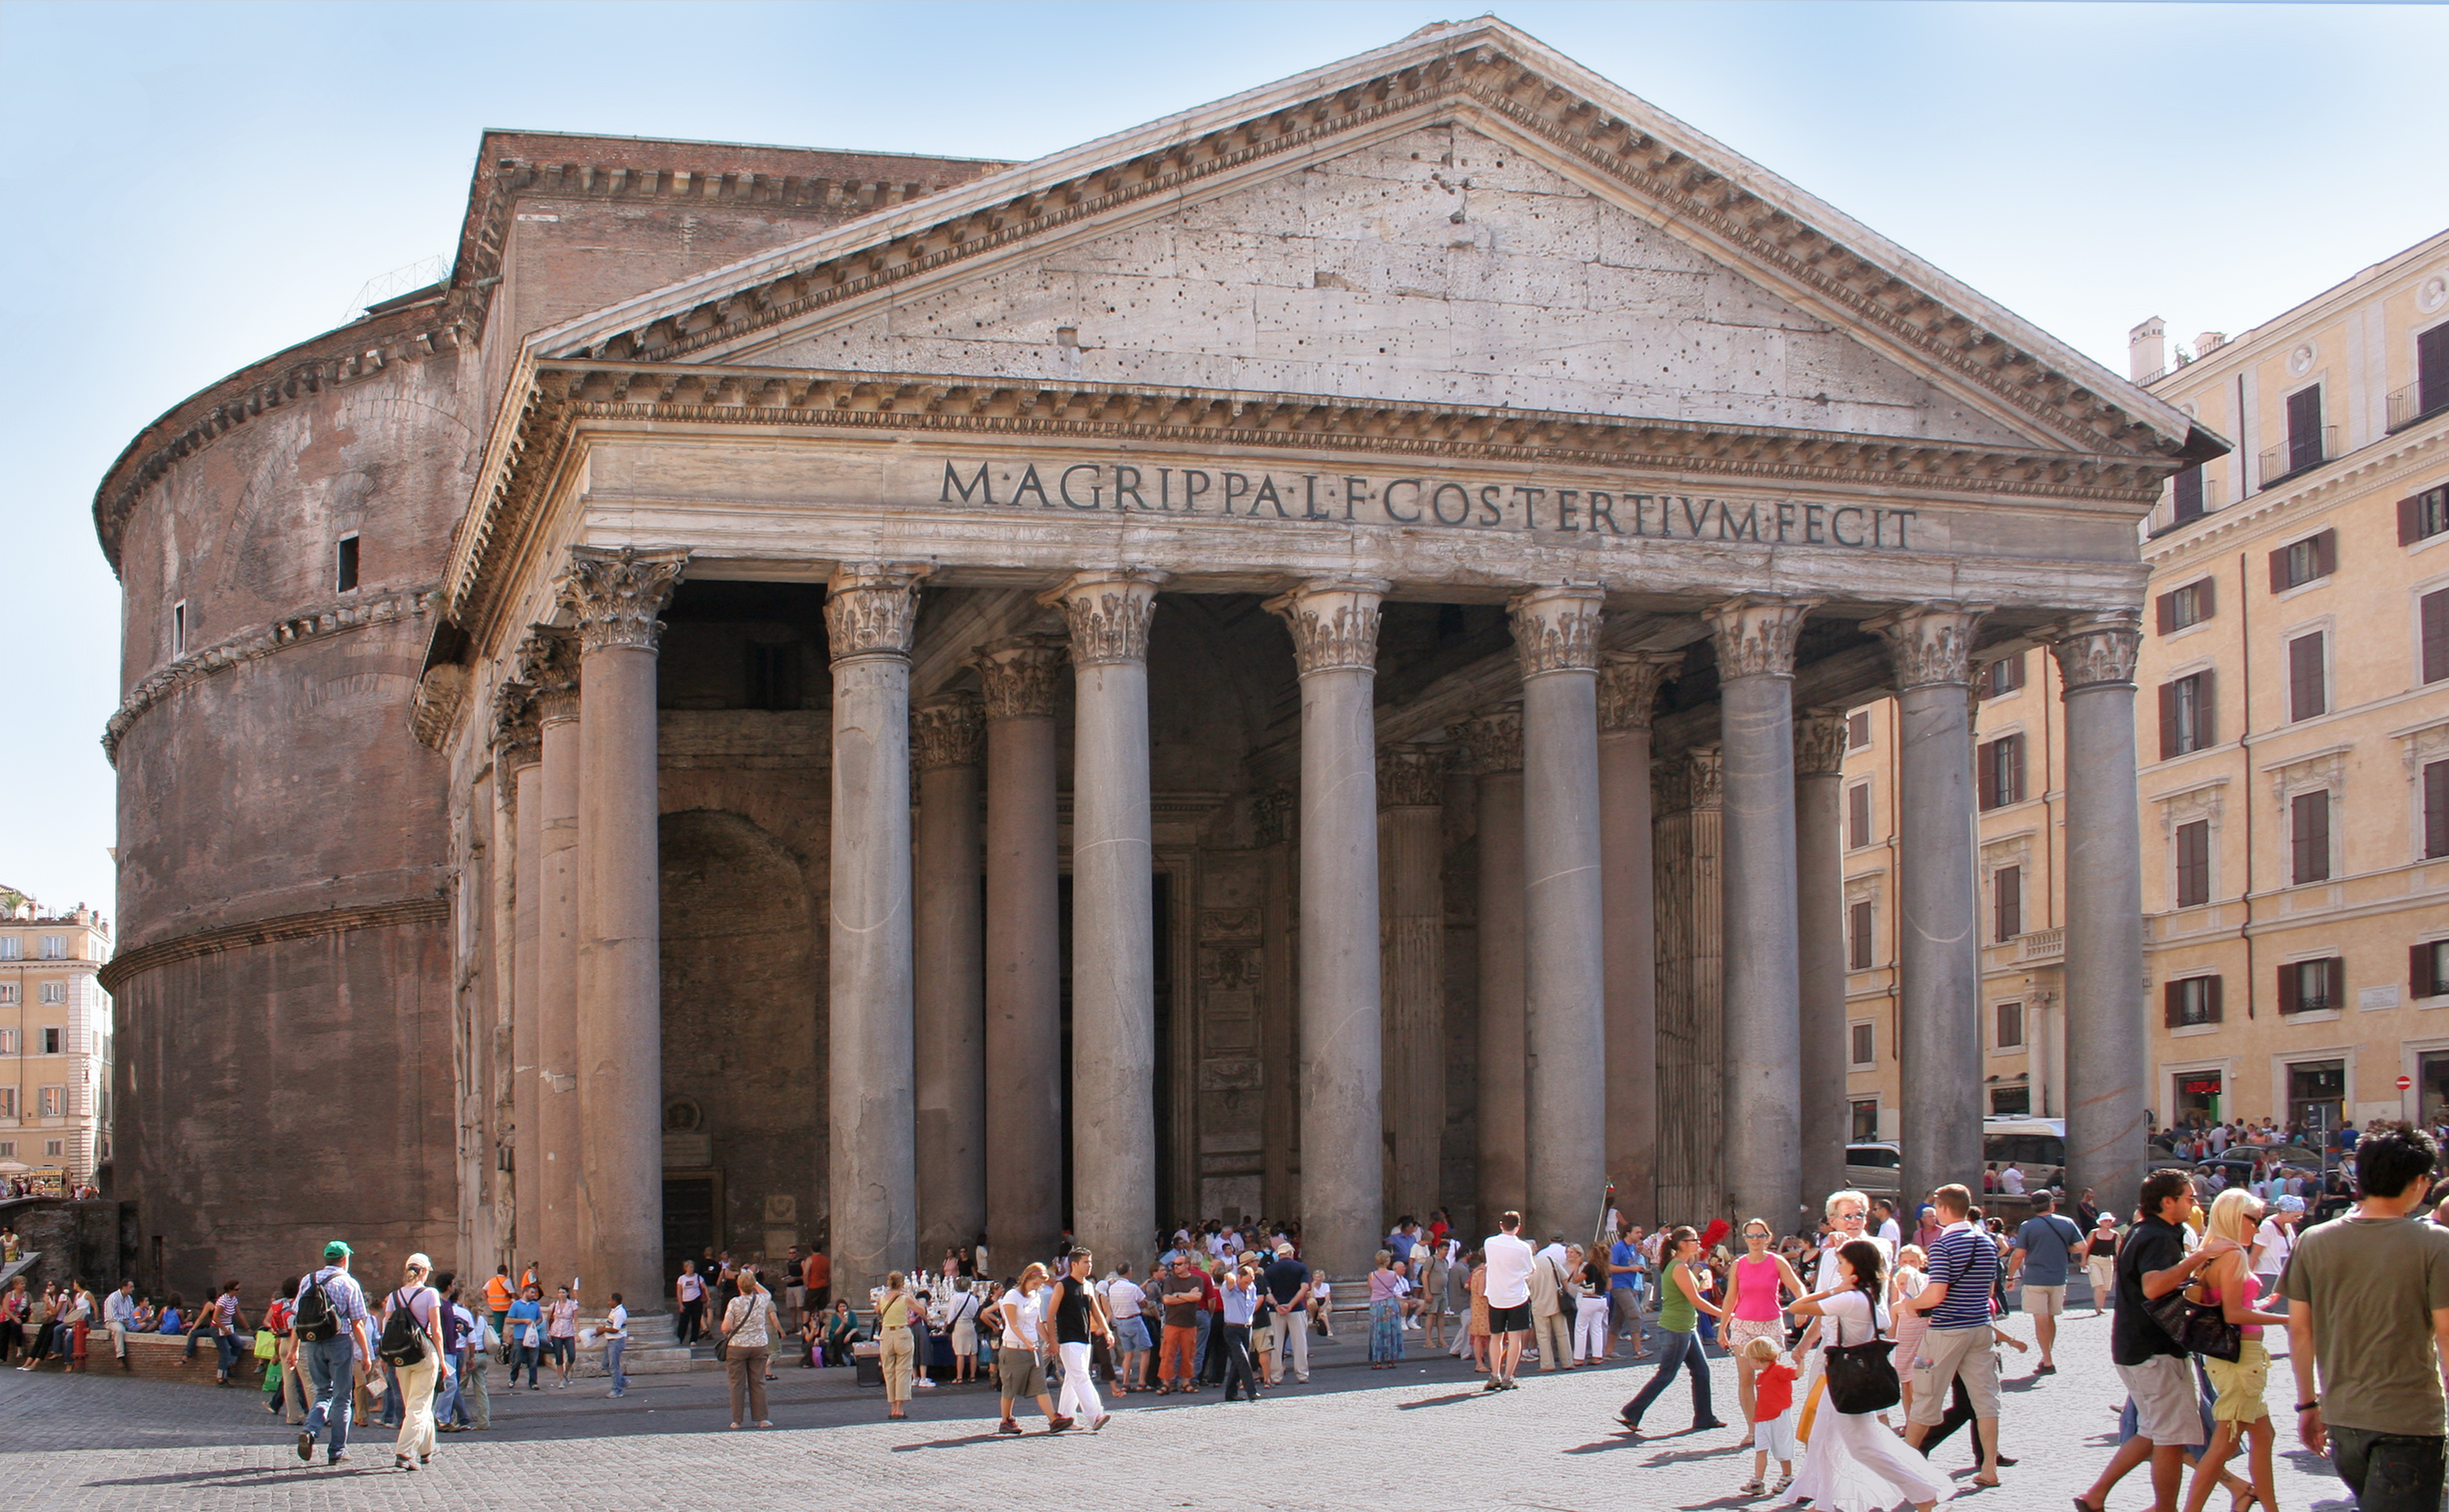 https://upload.wikimedia.org/wikipedia/commons/0/06/Rome_Pantheon_front.jpg